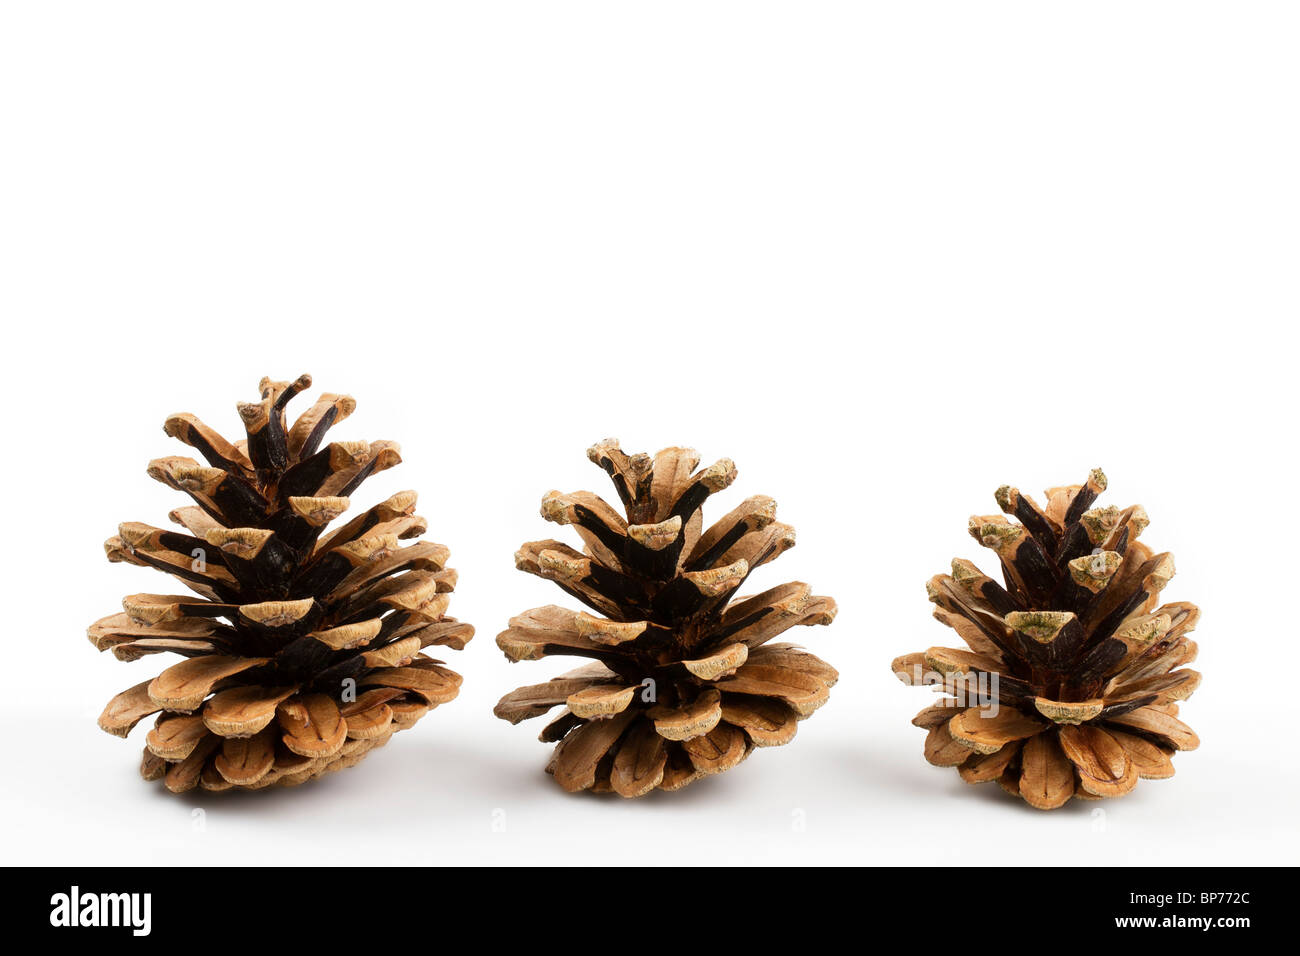 three pine cones isolated on white background - Stock Image